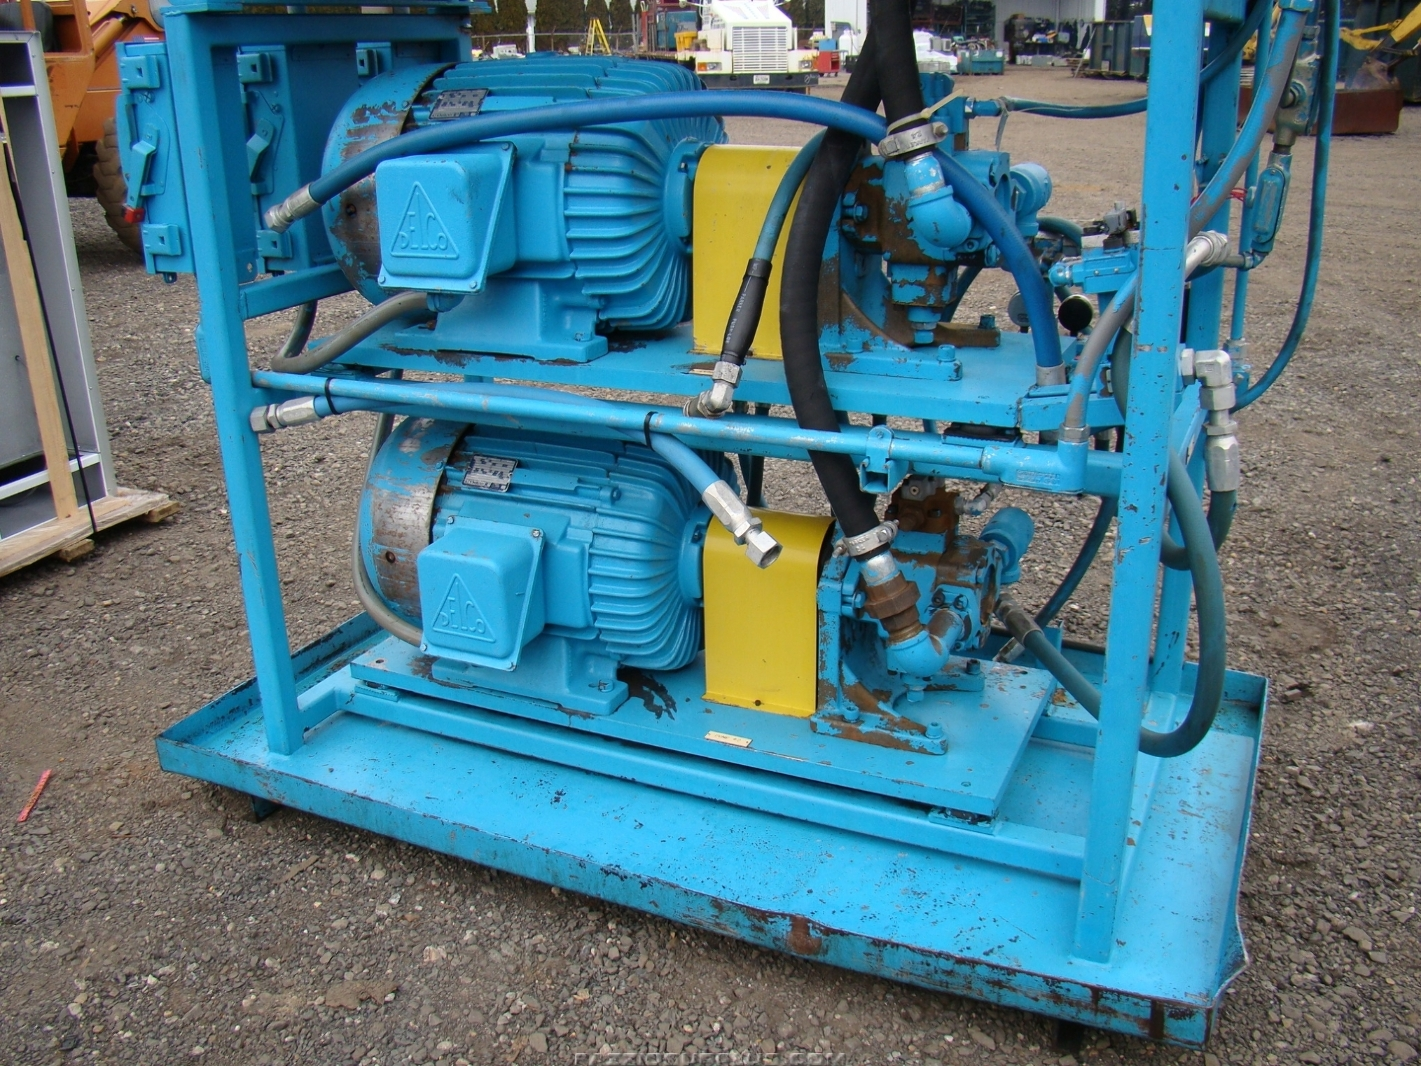 caledonia hydraulic equipment repair